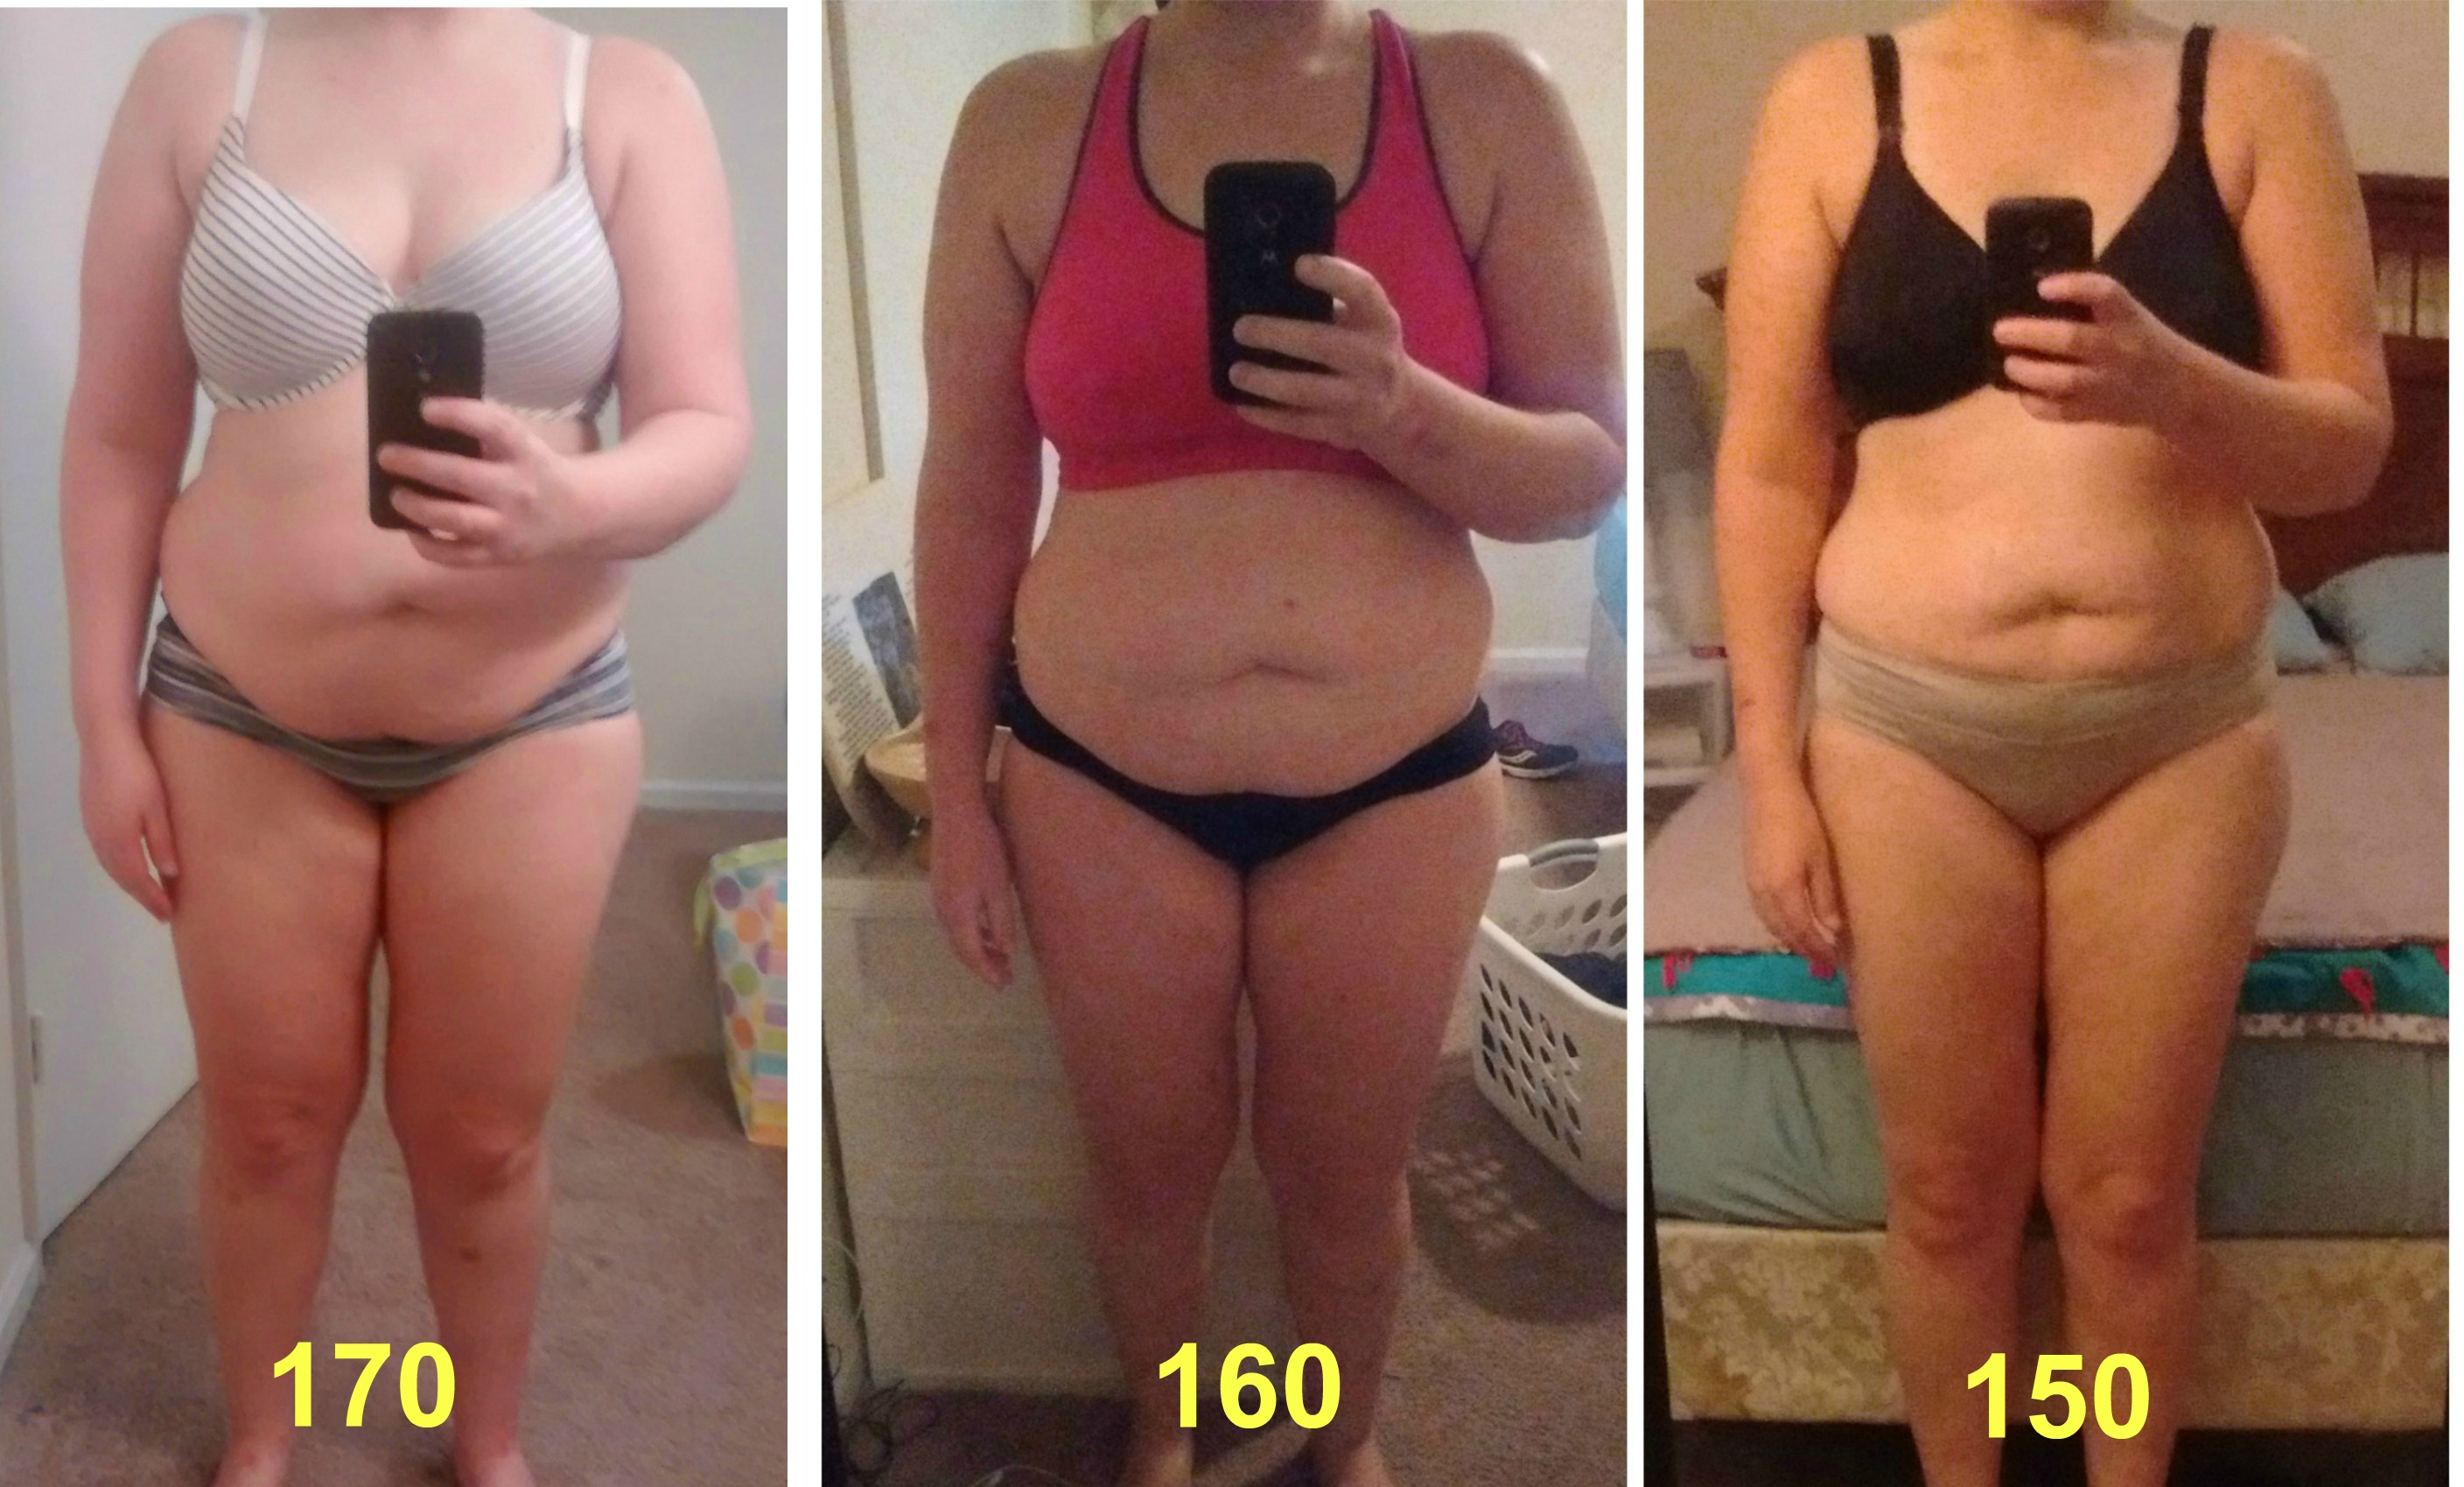 5 3 To Cm F 33 5 393 Quot 170lbs Gt 150 Lbs 20 Lbs 8 Months 20 Lbs